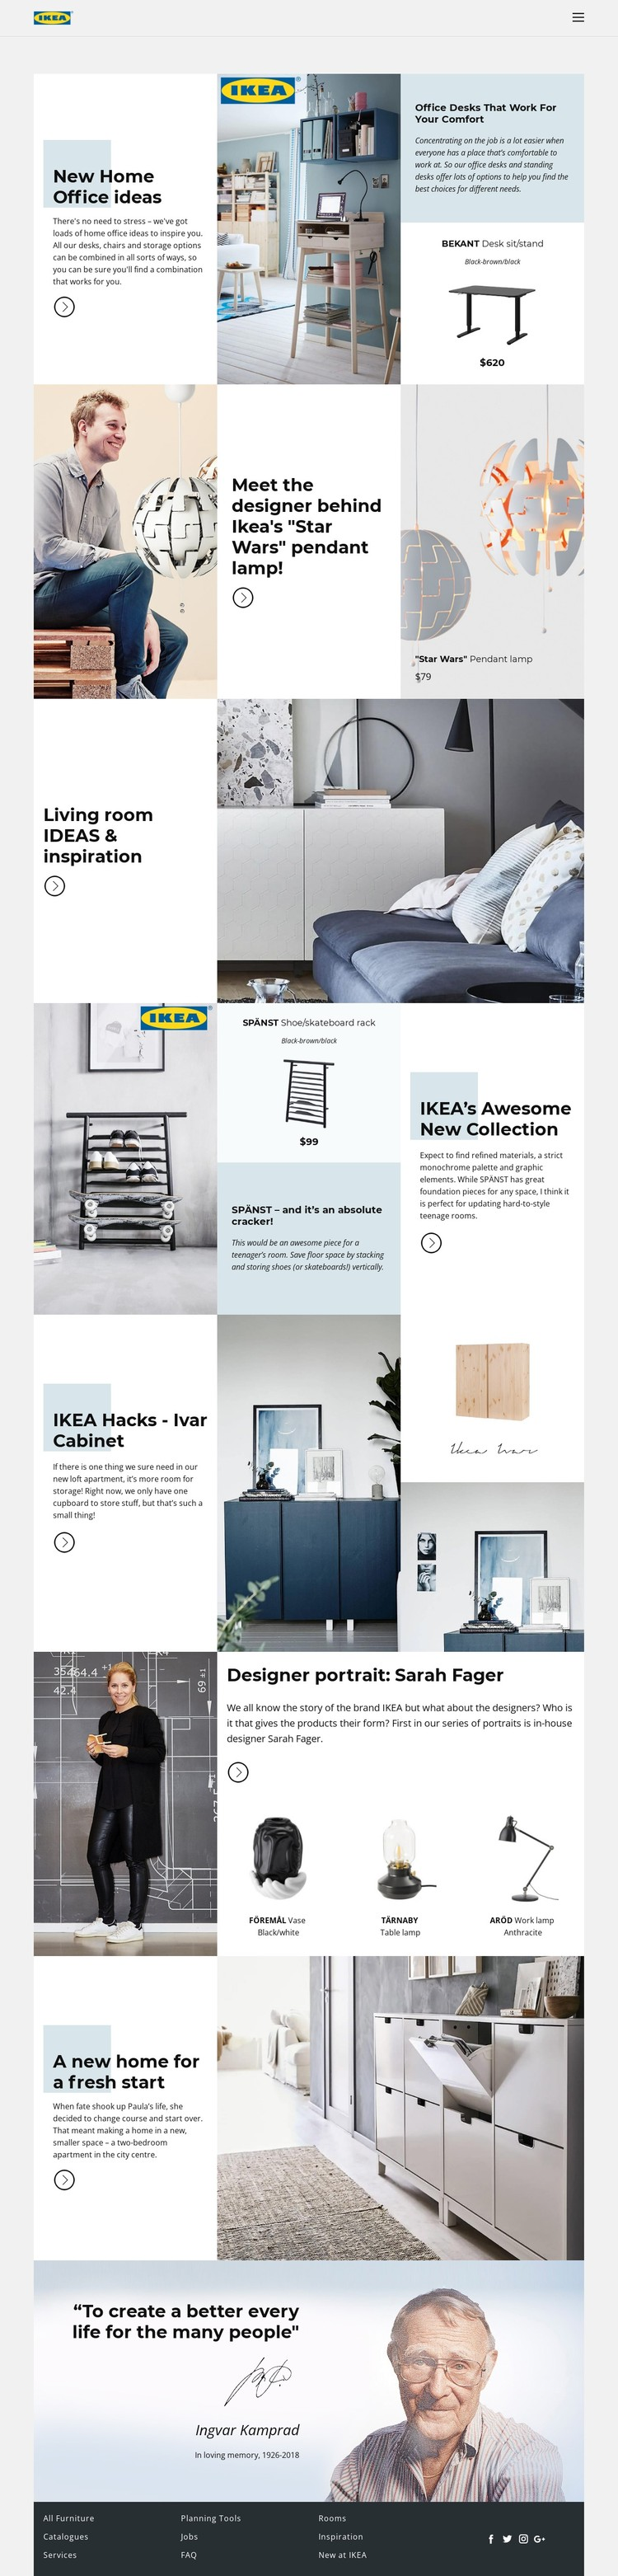 Inspiration from IKEA Static Site Generator